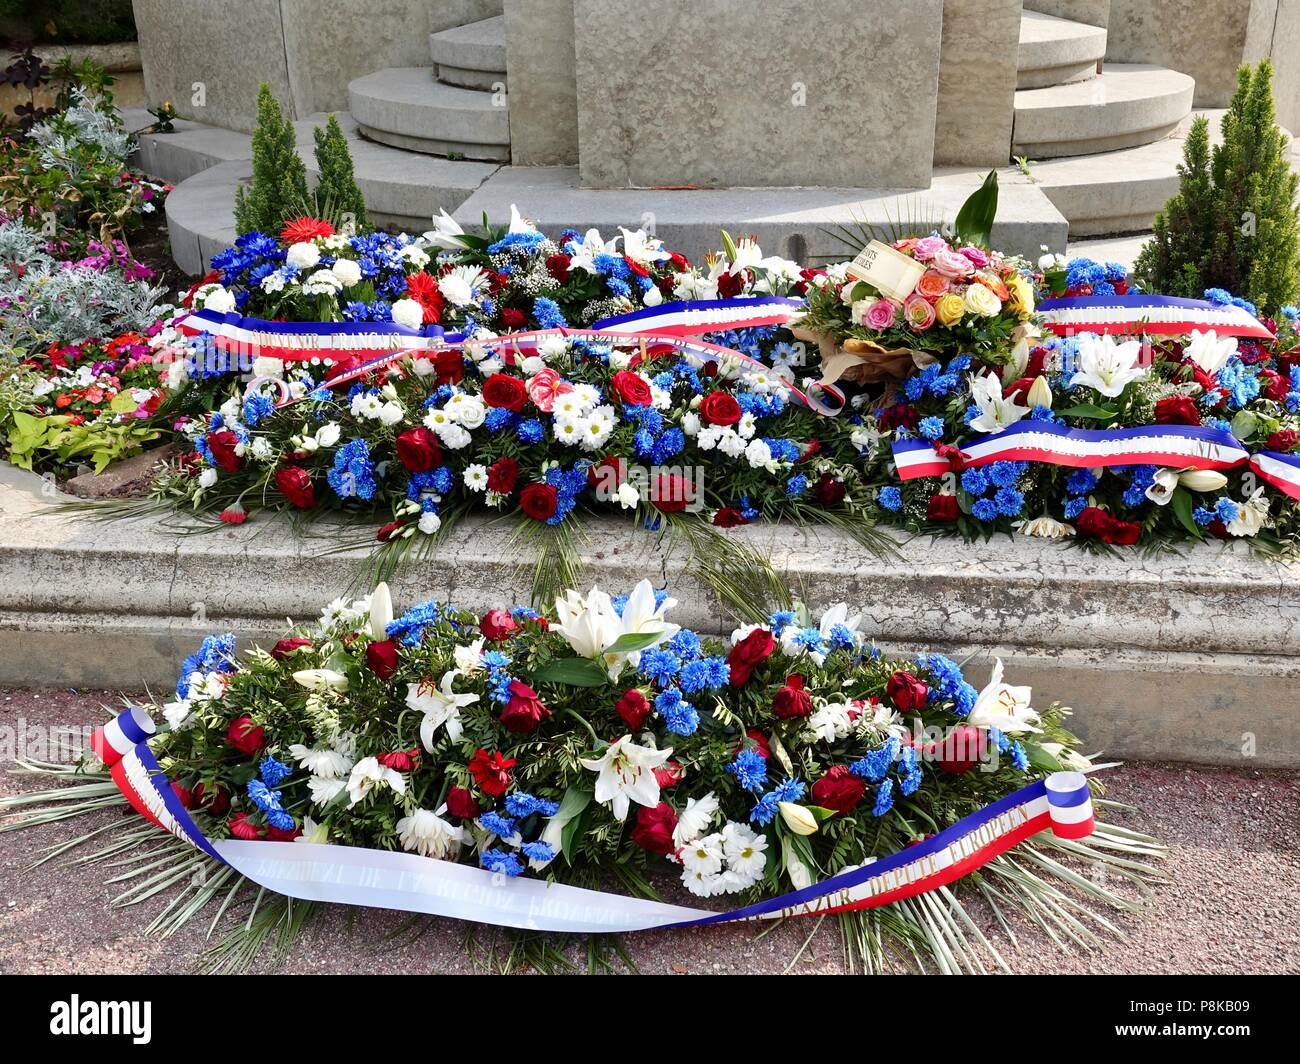 Blue, white, and red flowers with ribbons, placed in front of a French war memorial in honor of those who died fighting for France, Avignon, France. - Stock Image